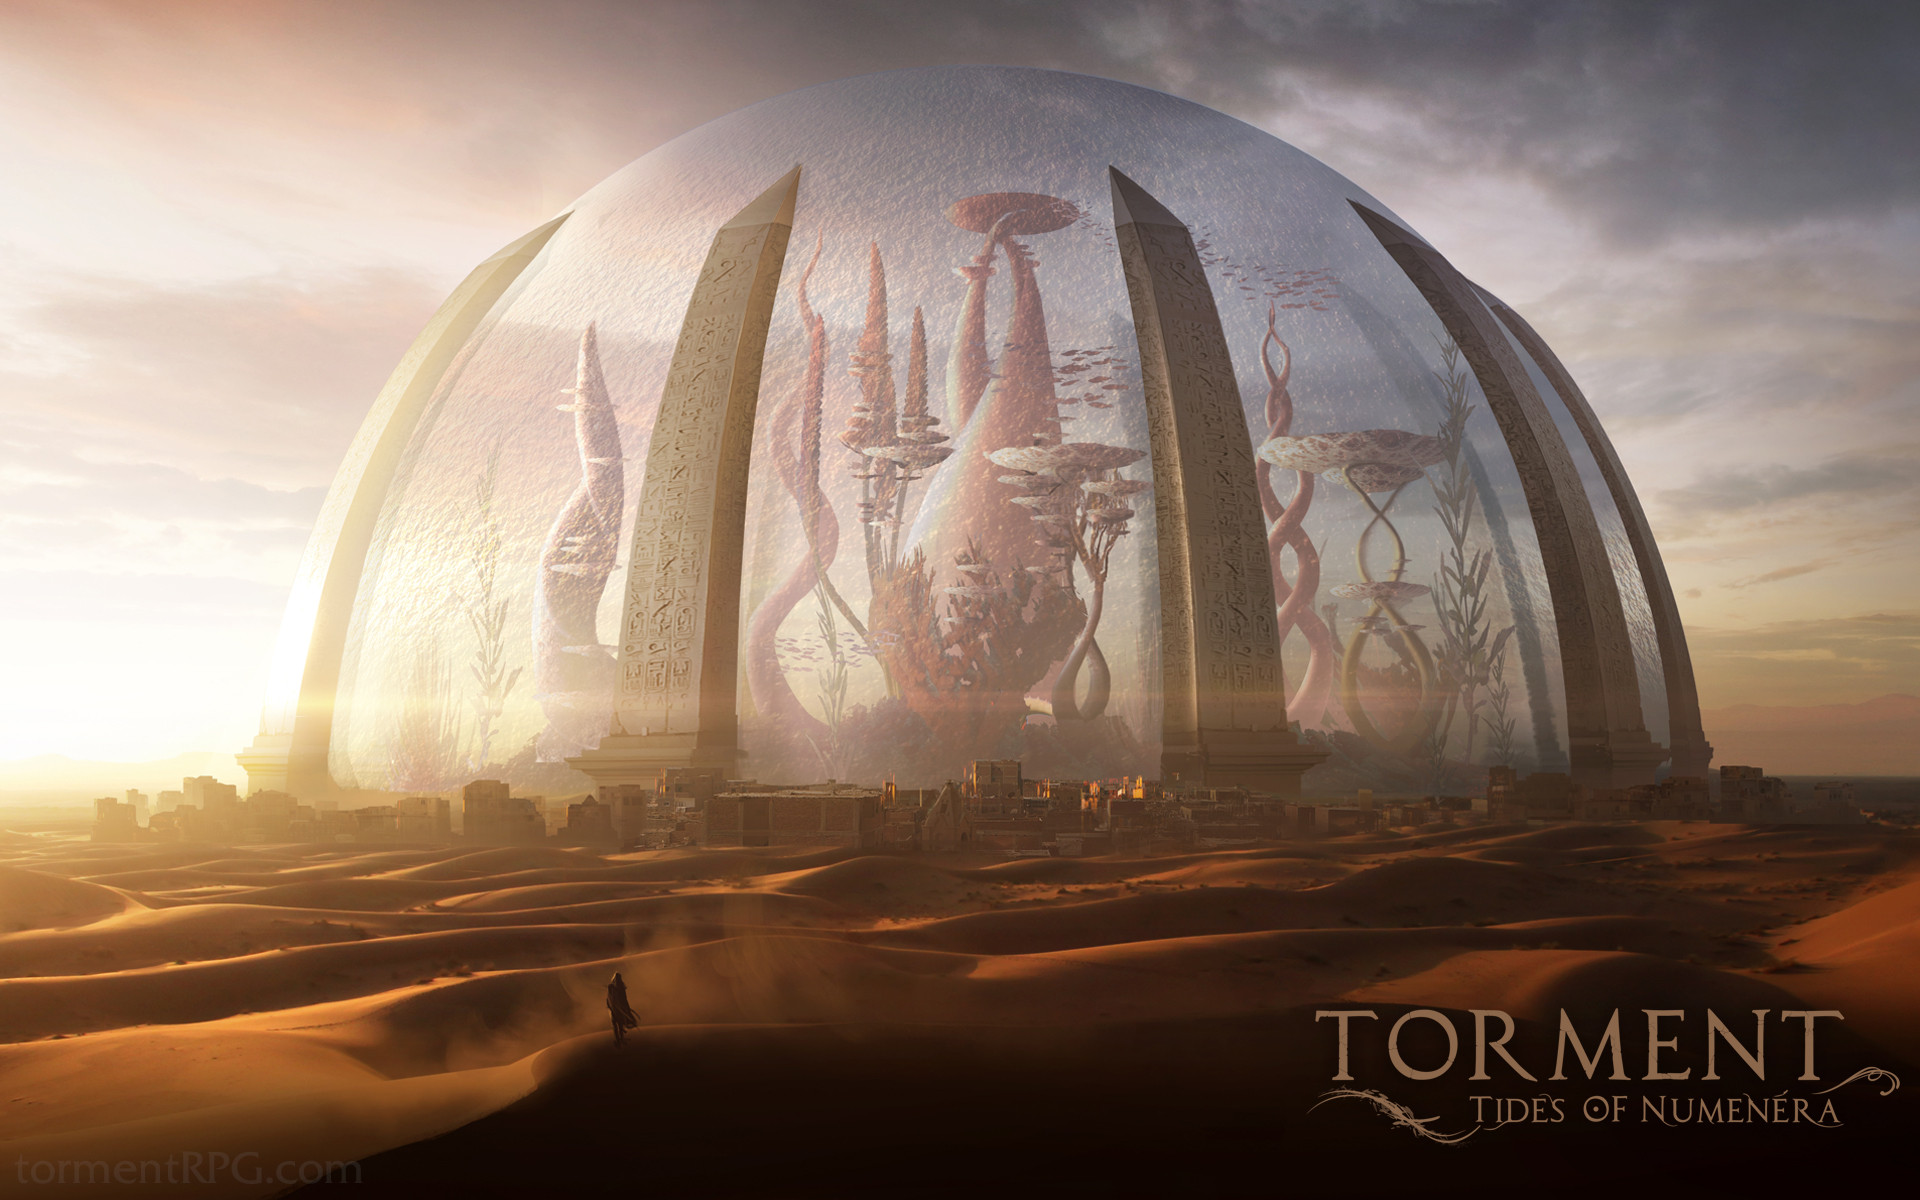 torment-tides-of-numenera-art